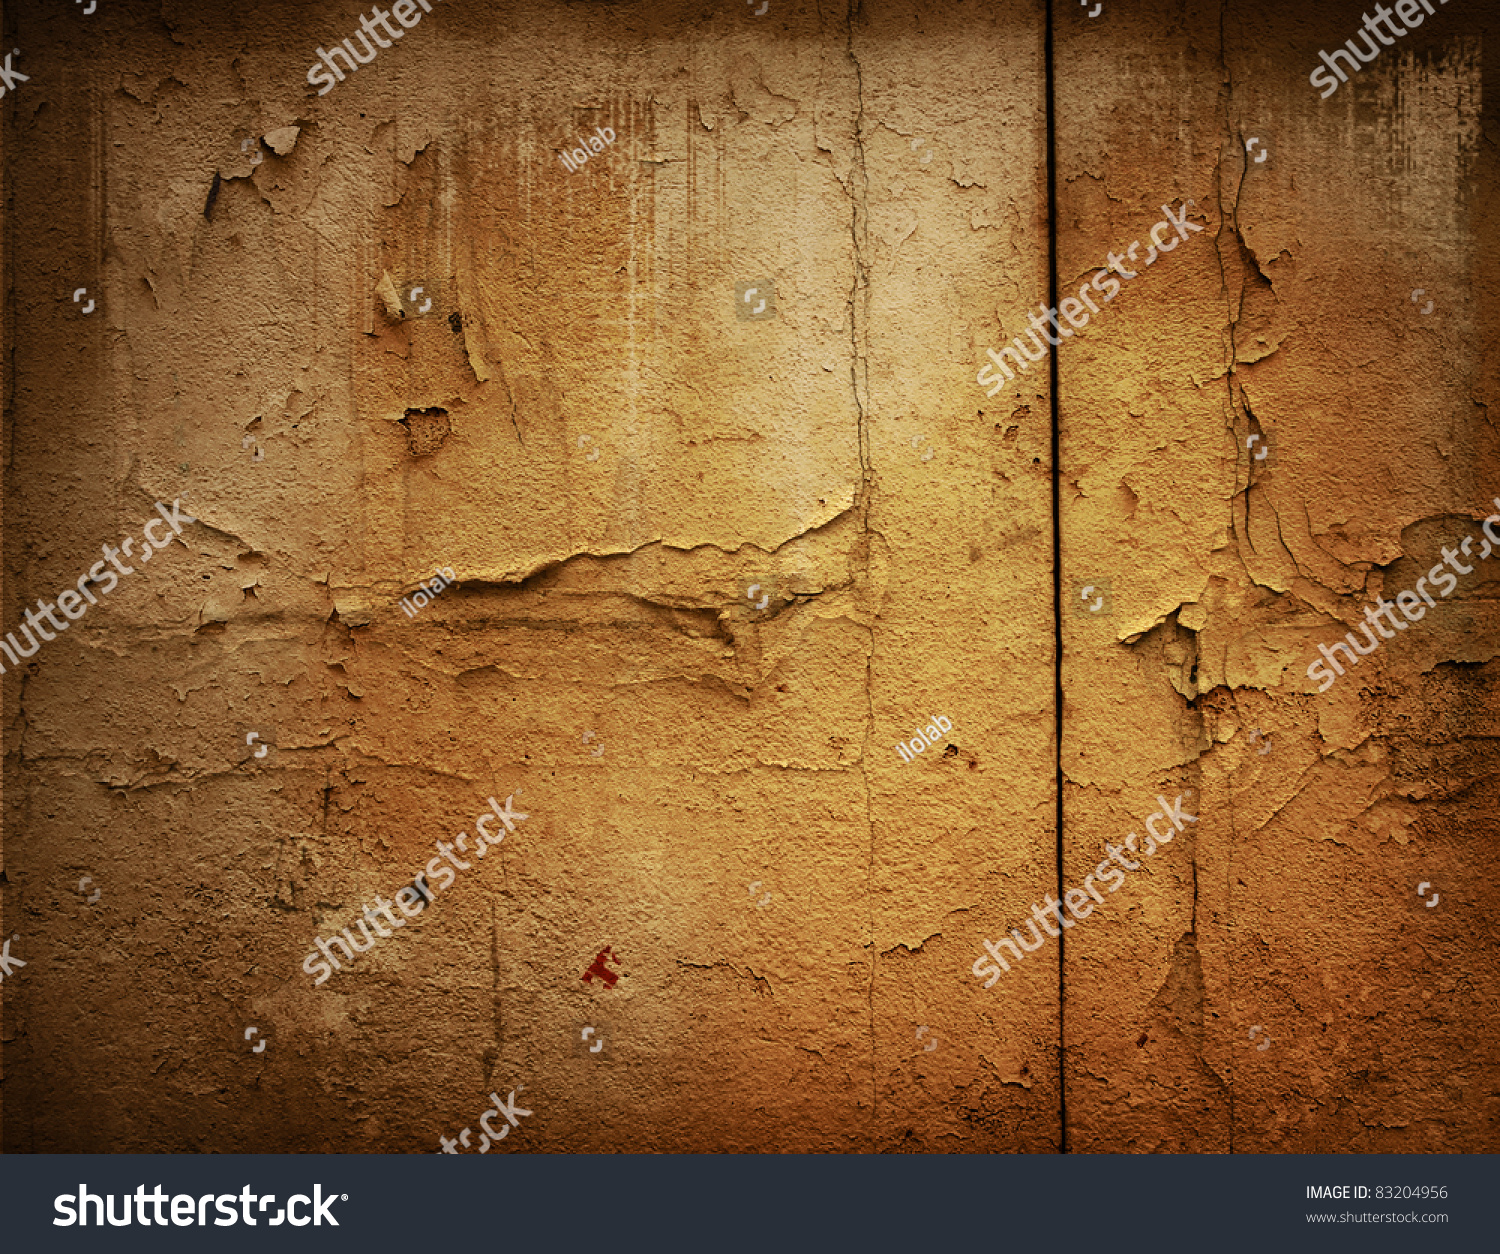 grungy wall sandstone surface background shot in paris france stock photo 83204956 shutterstock. Black Bedroom Furniture Sets. Home Design Ideas